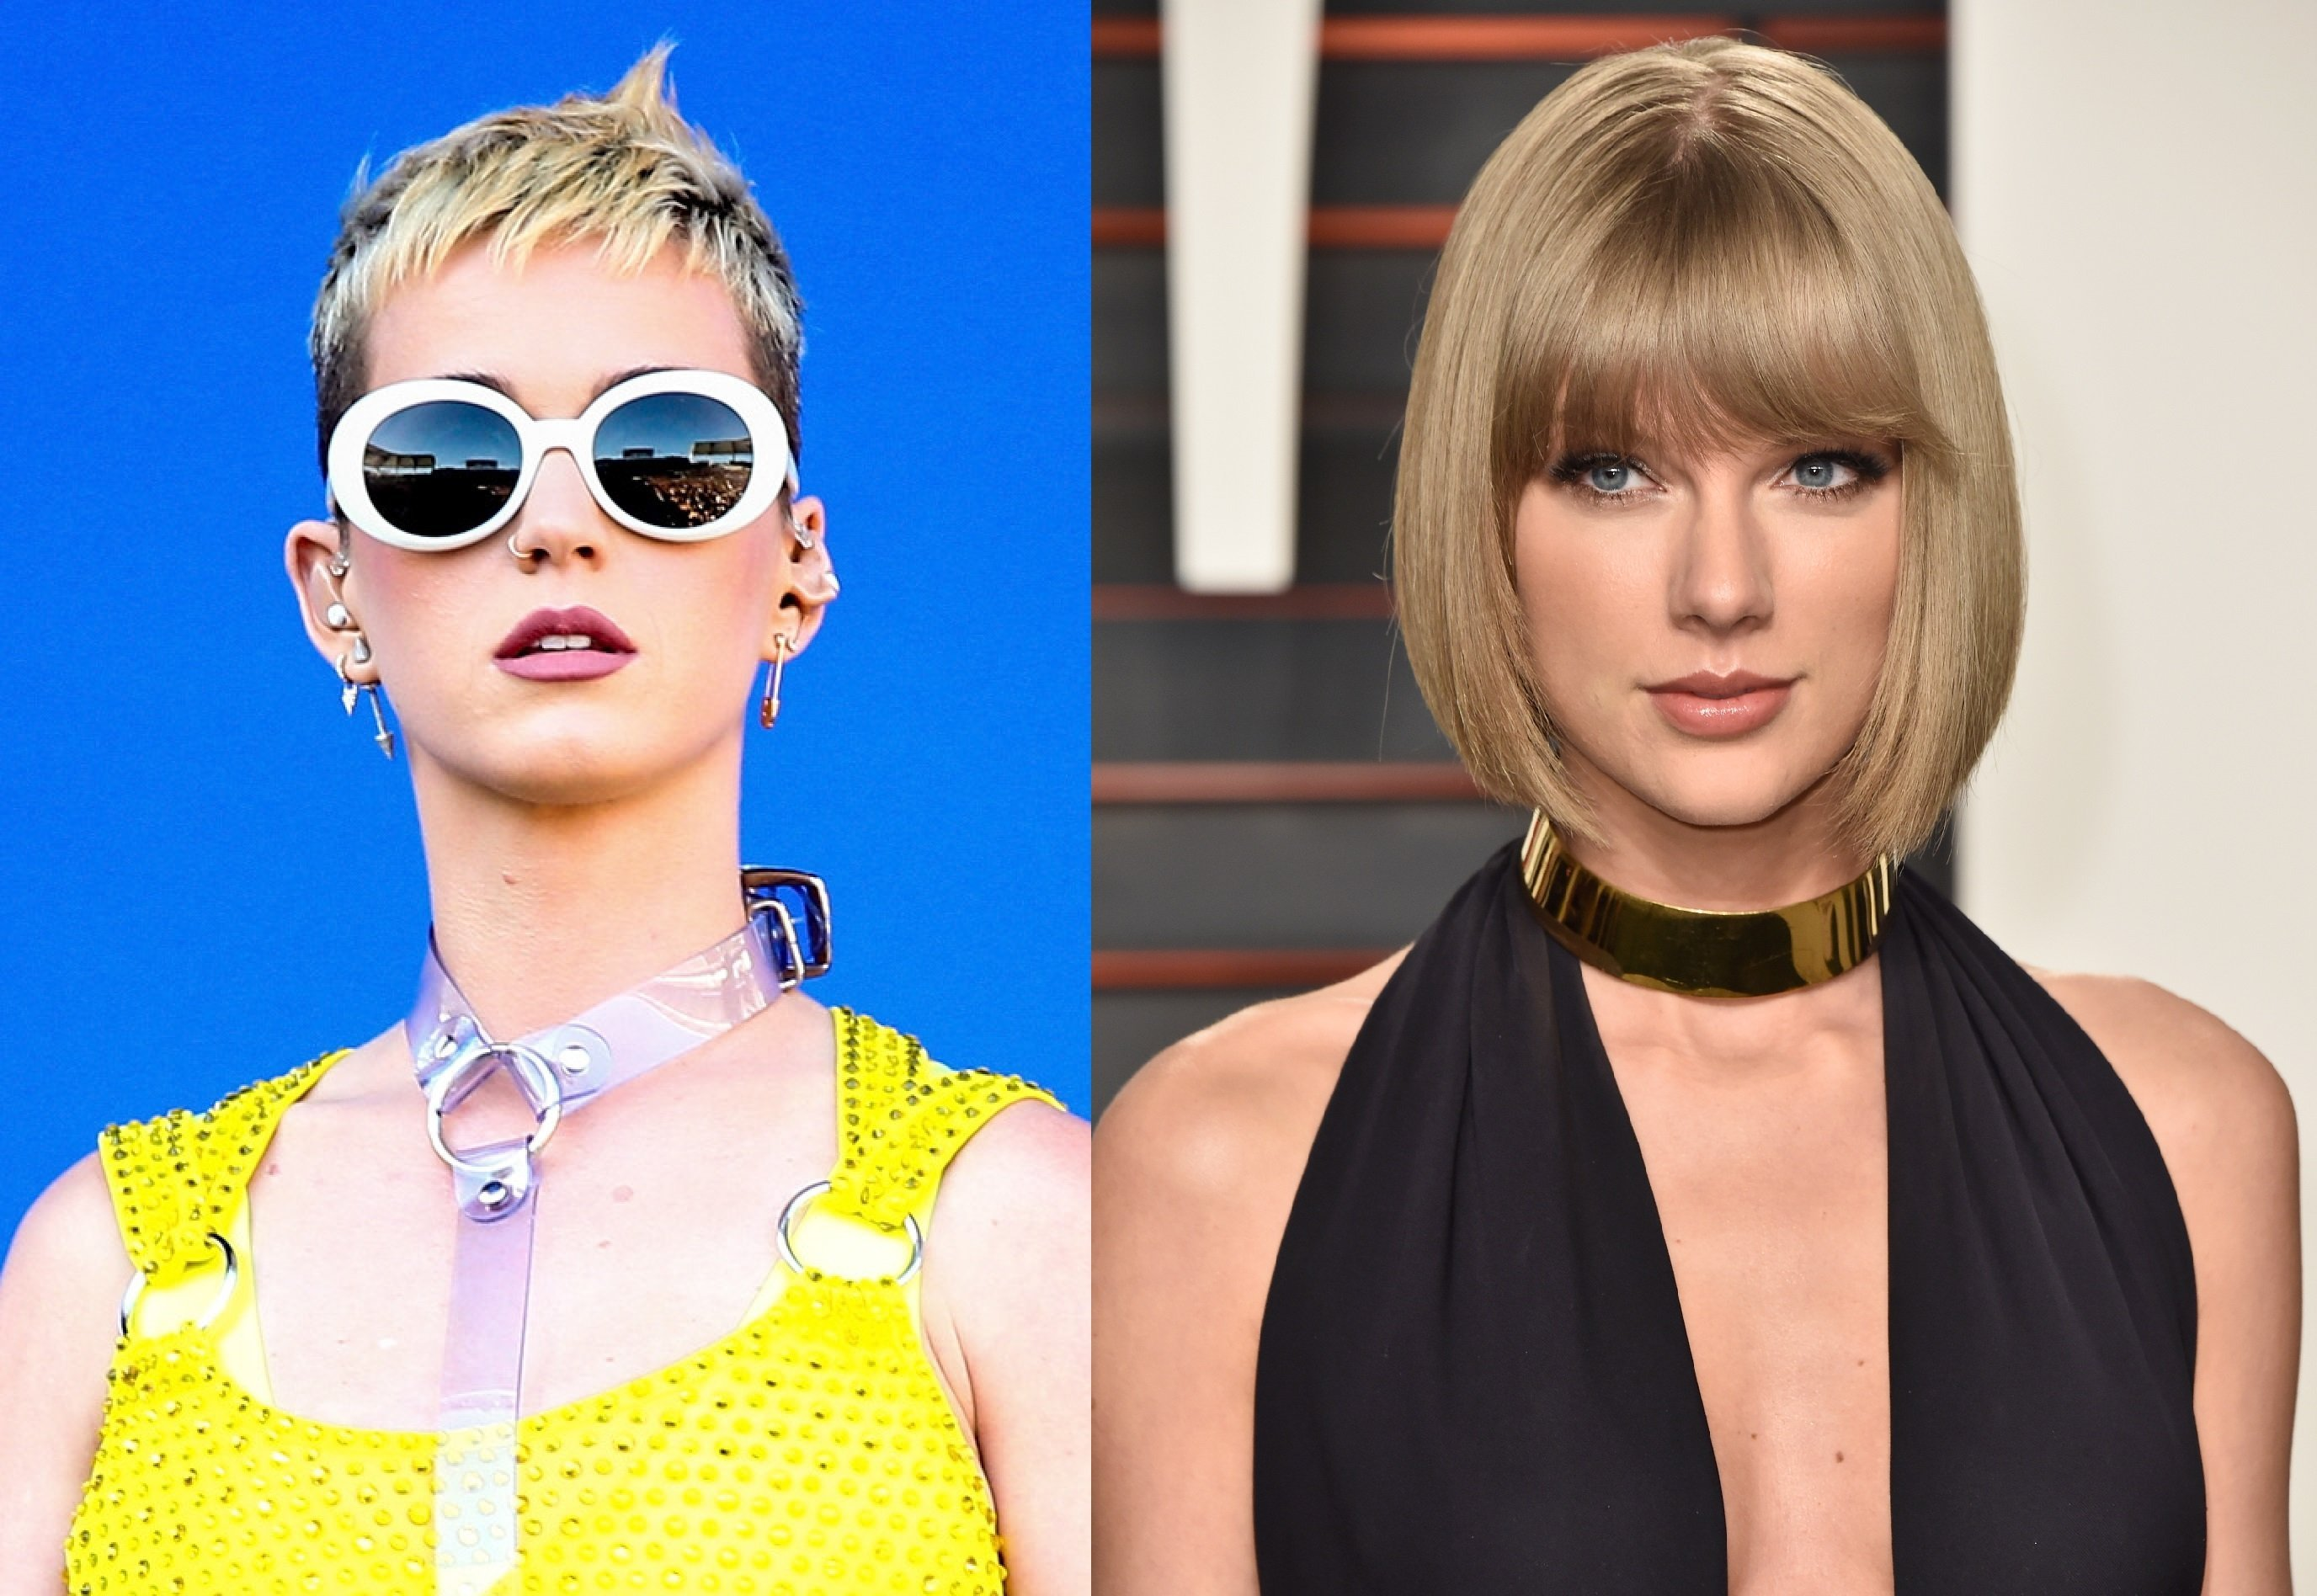 Katy Perry explains why she ended her feud with Taylor Swift